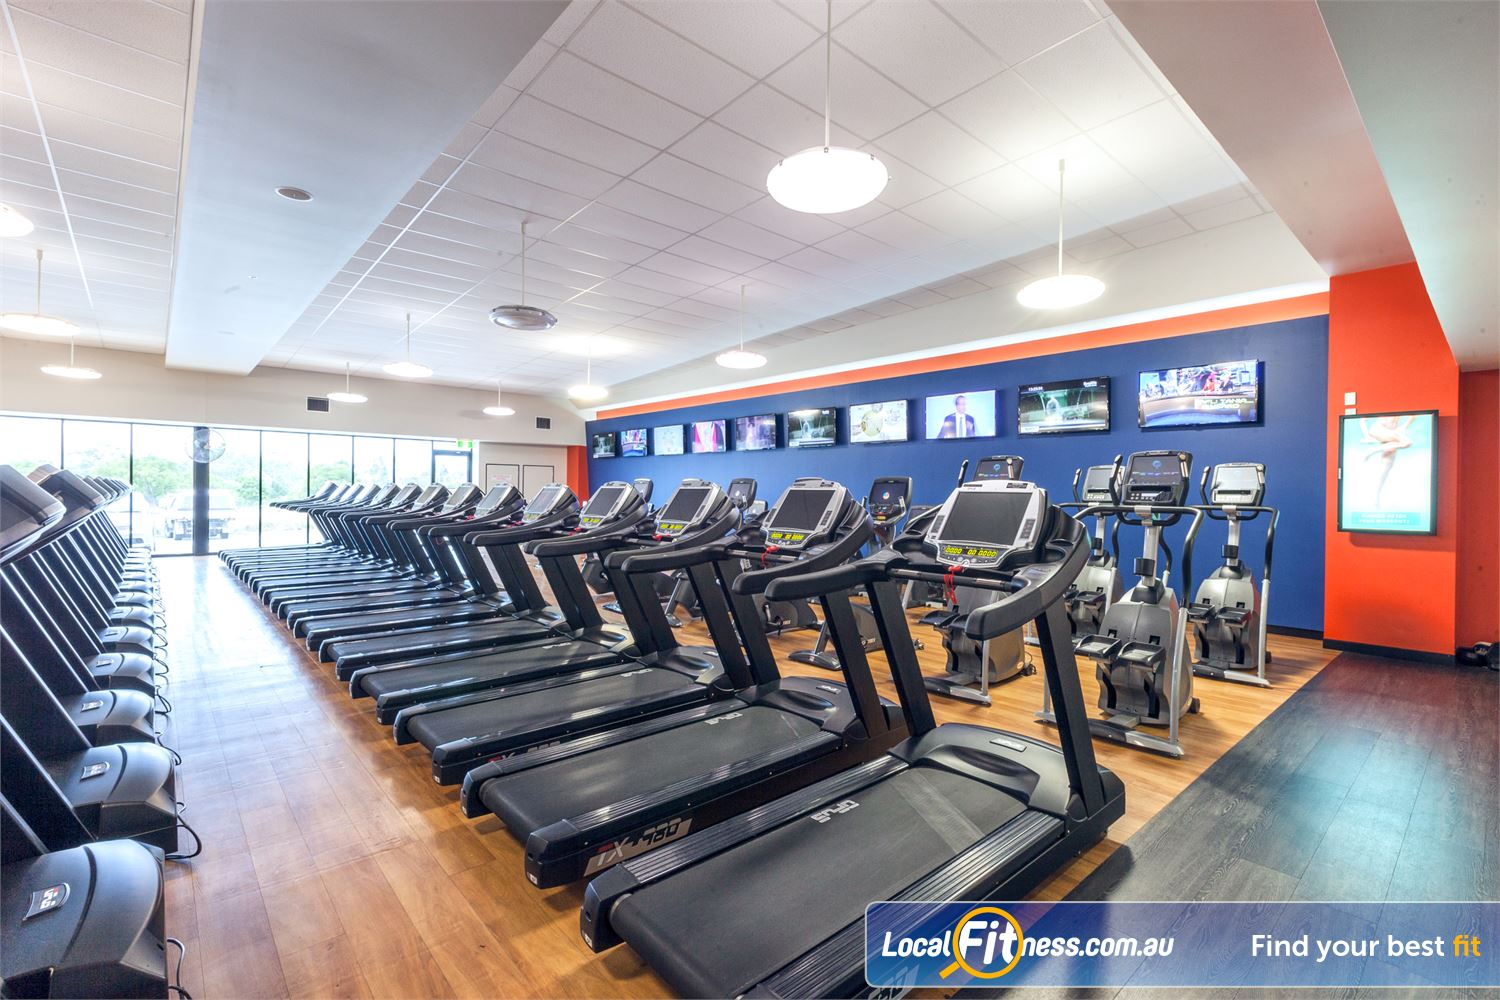 Goodlife Health Clubs Caloundra Tune into your favorite shows in our Caloundra cardio theatre.